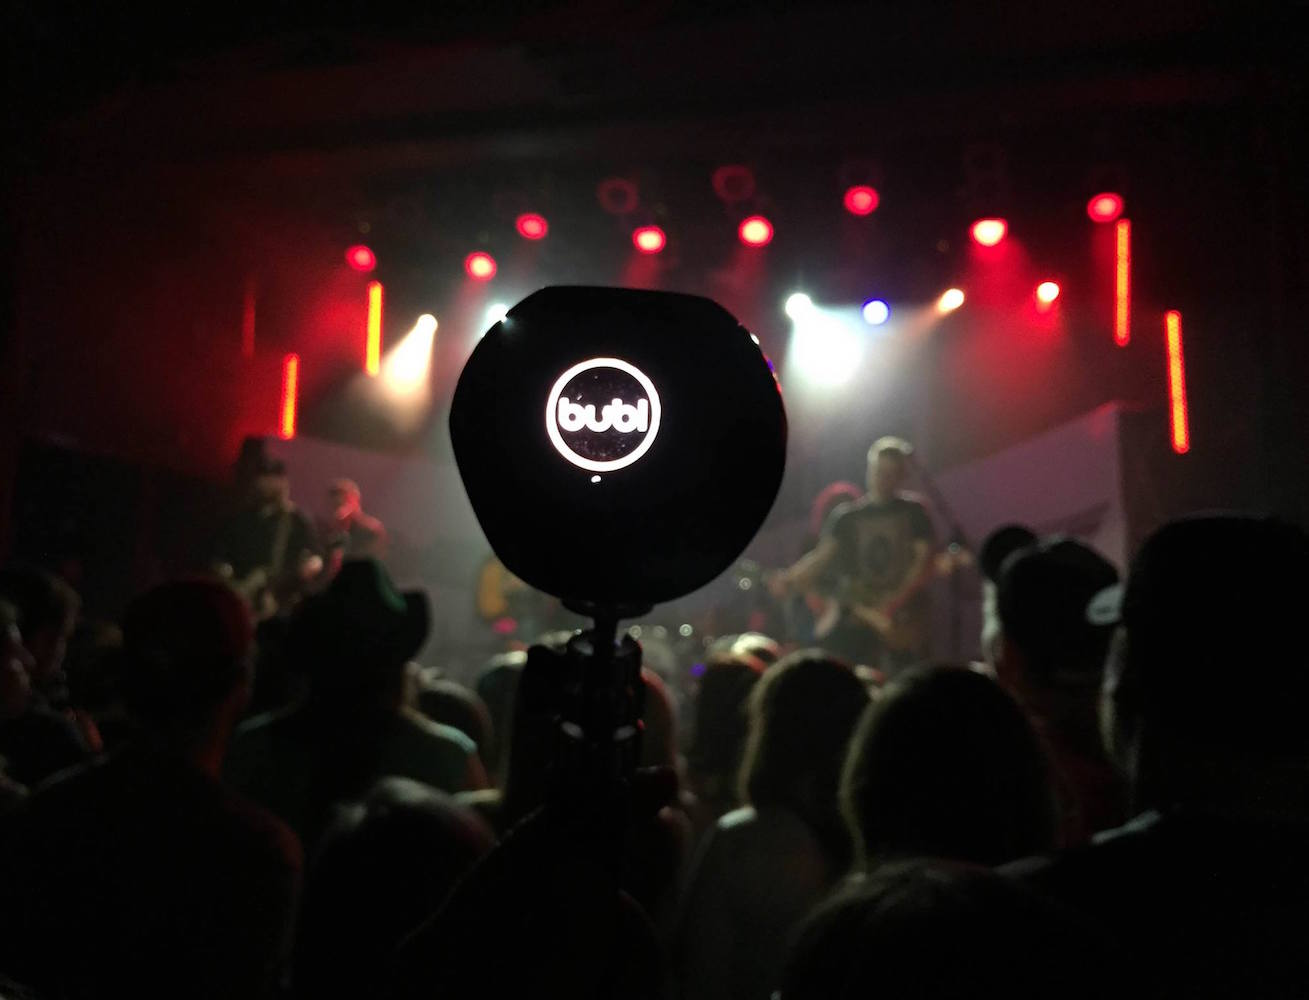 Bublcam – Fully Spherical Camera for Photo and Video